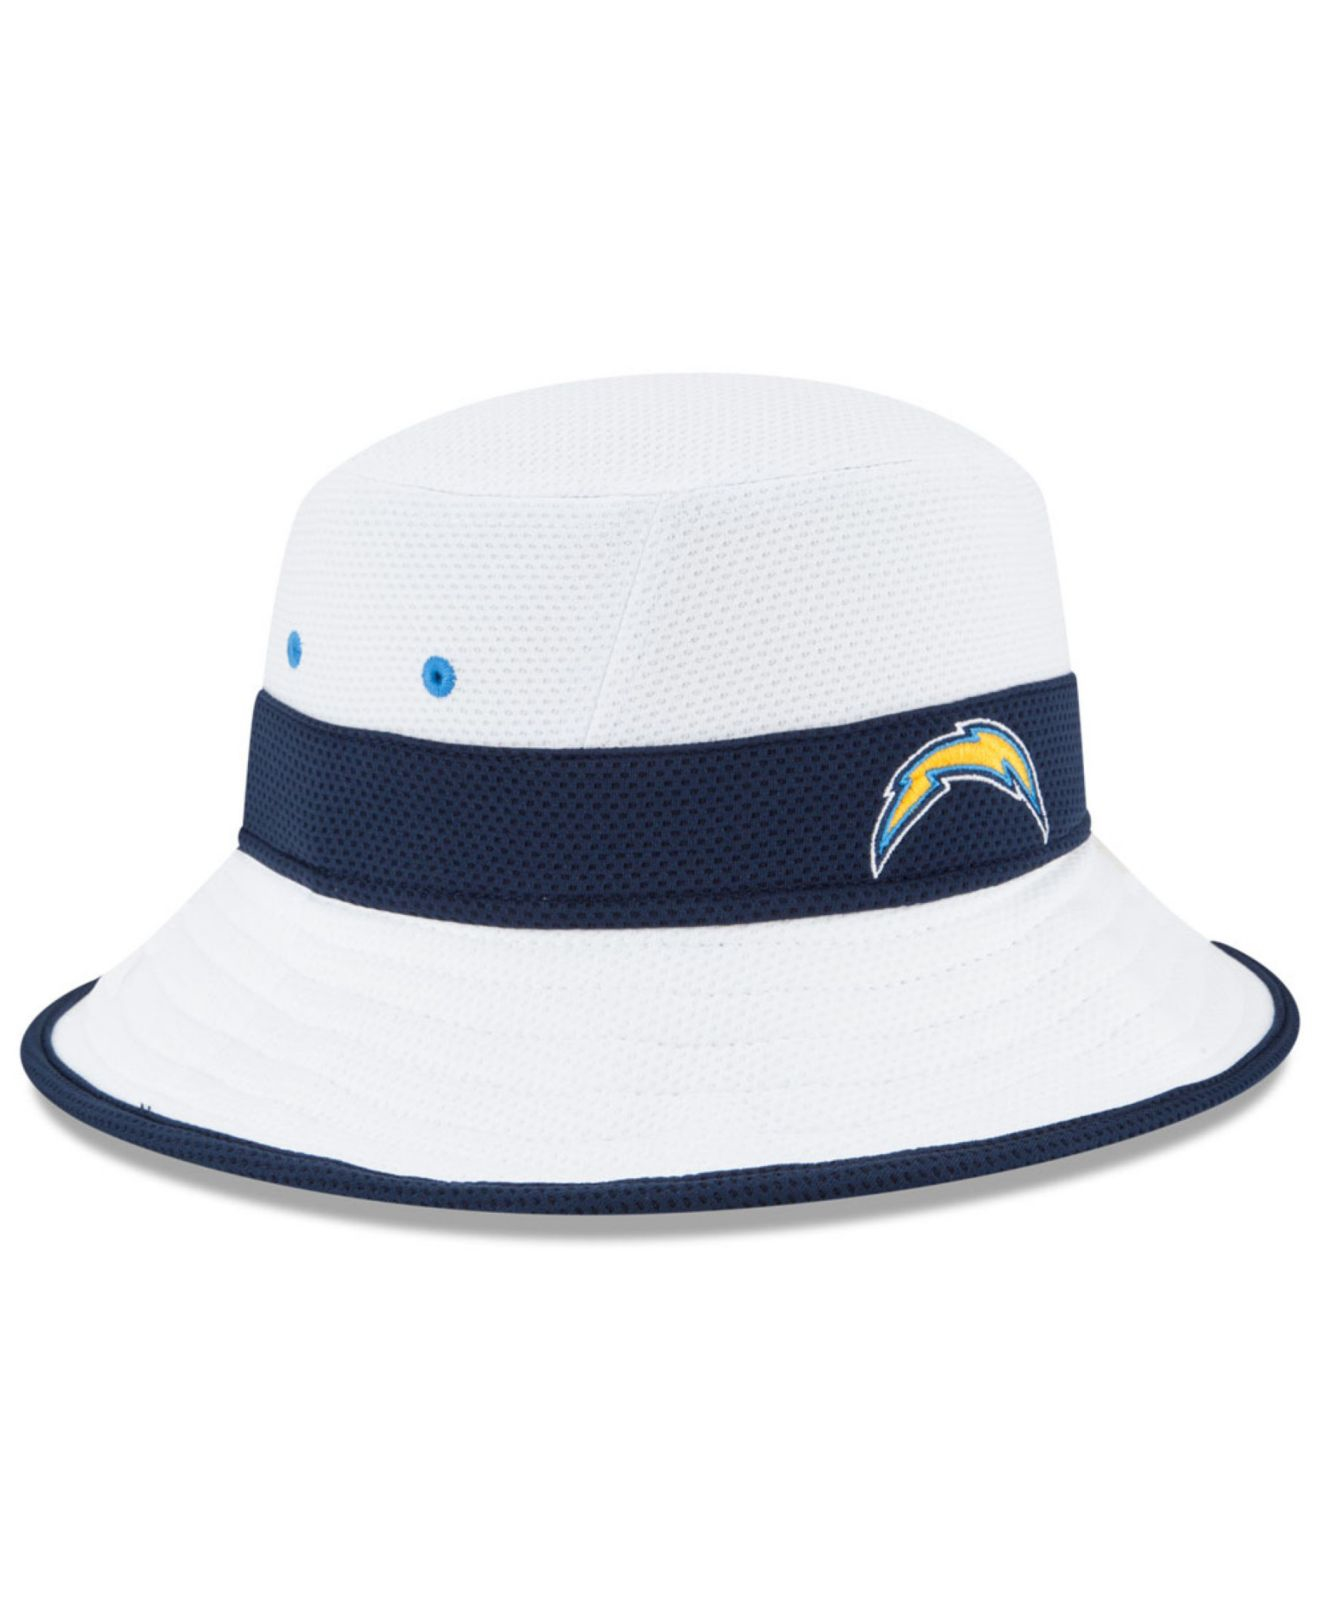 e0233747fb6aa Lyst - Ktz San Diego Chargers Training Camp Reverse Bucket Hat in ...